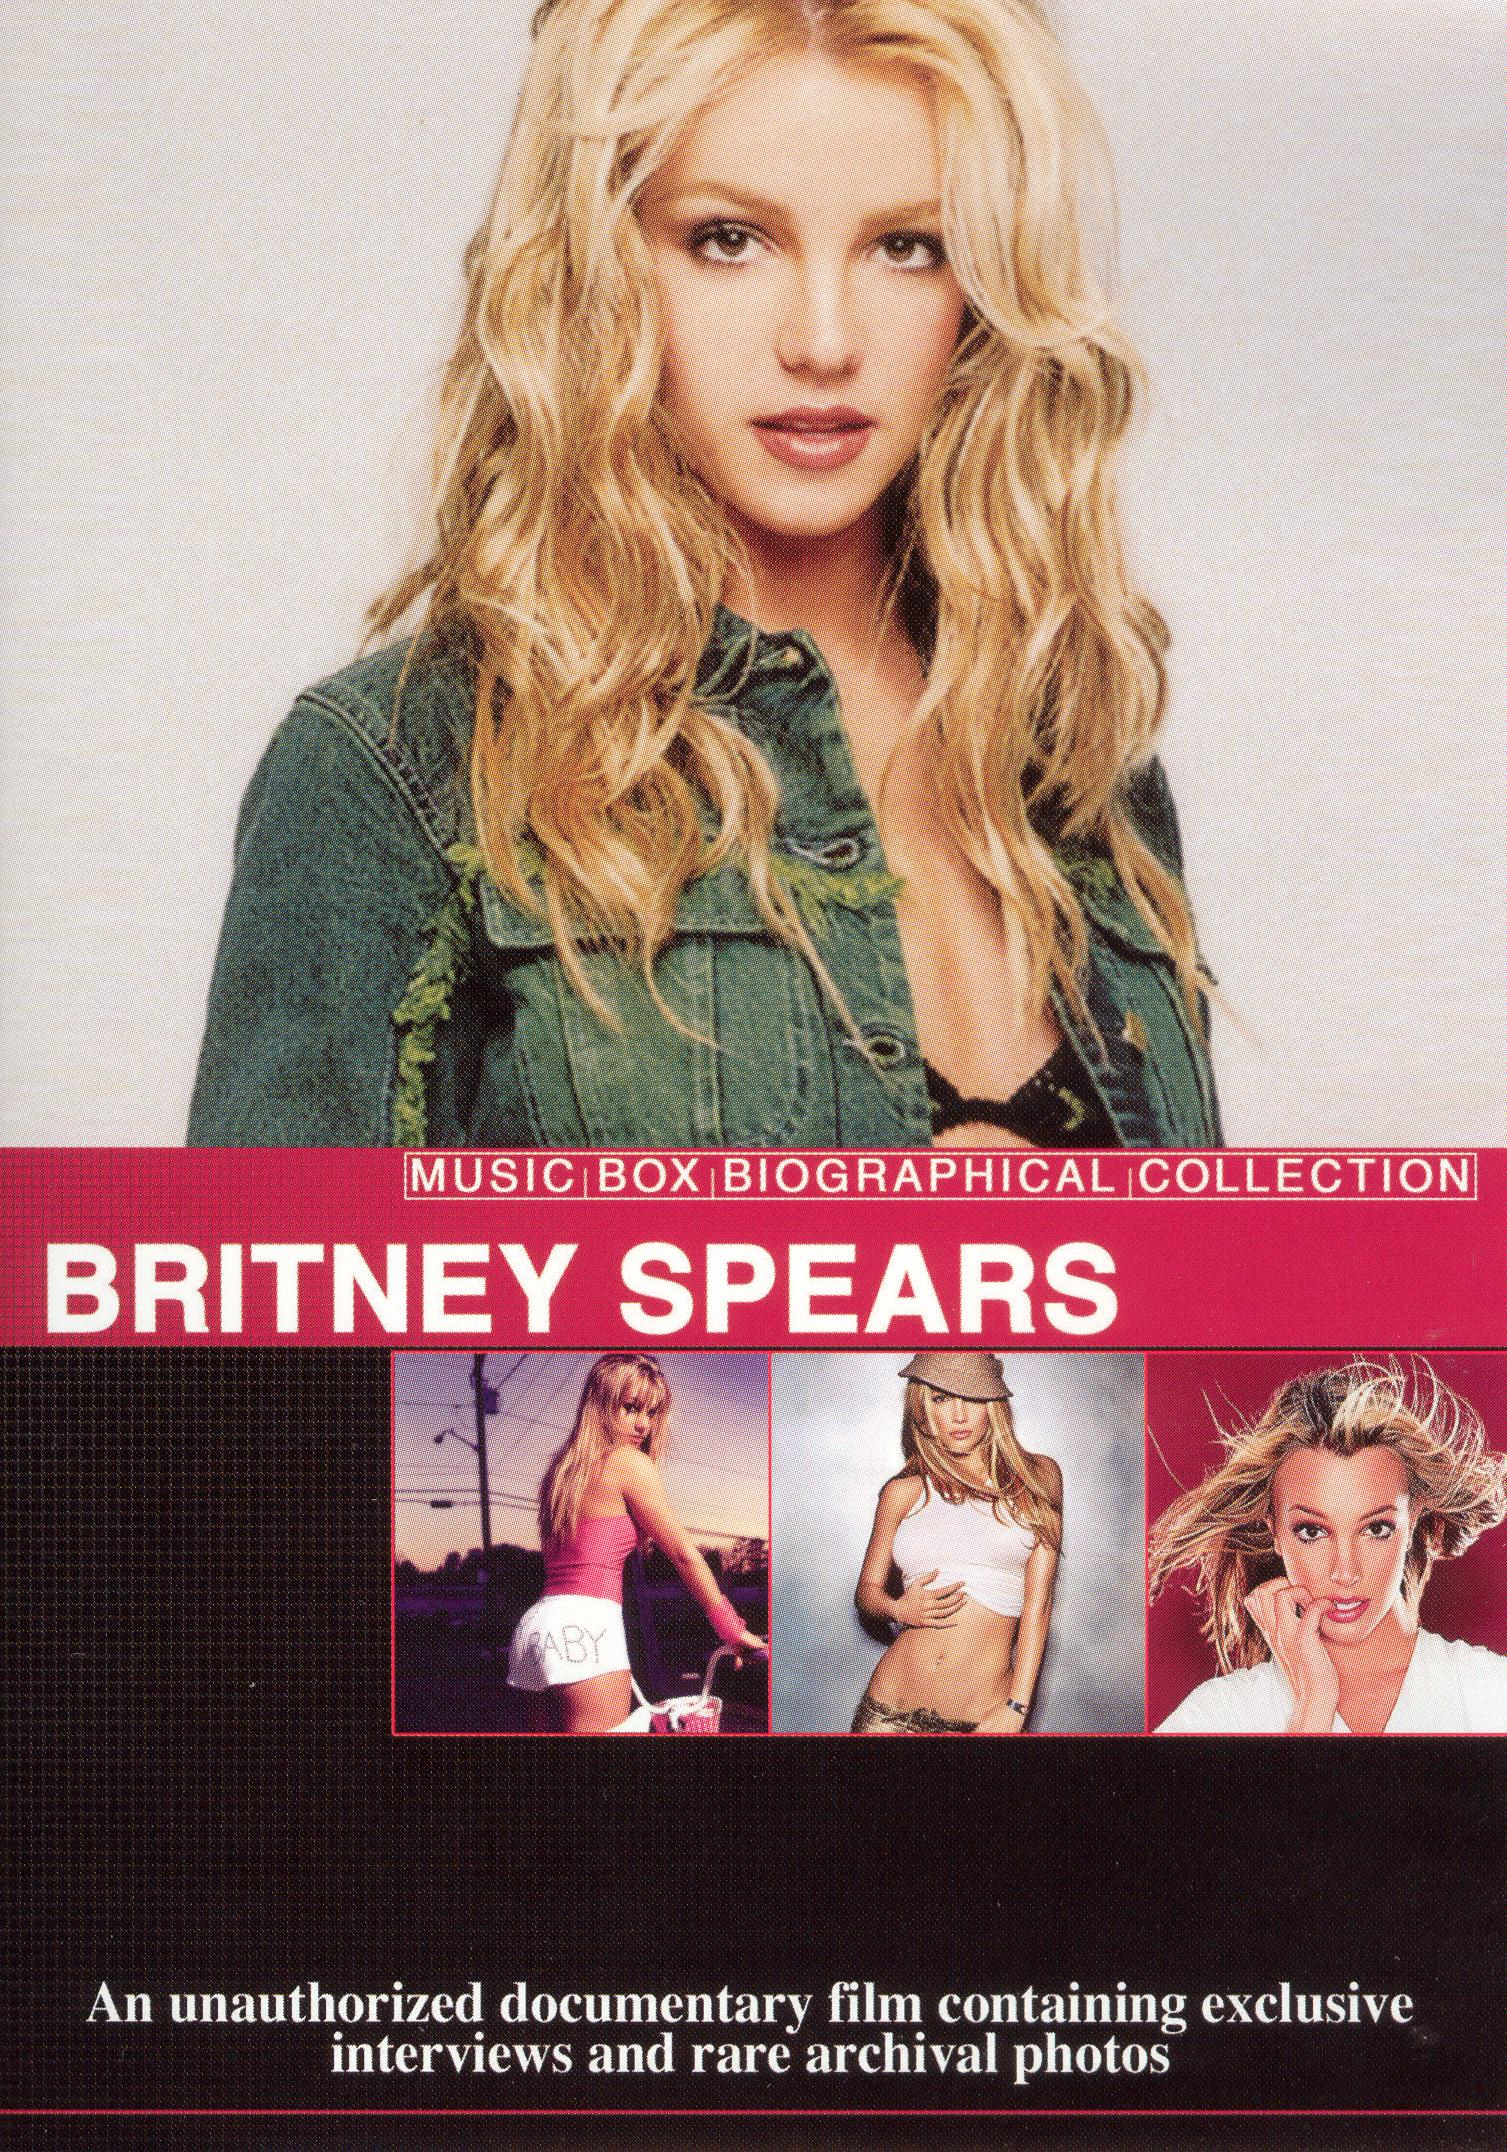 Music Box Biographical Collection: Britney Spears